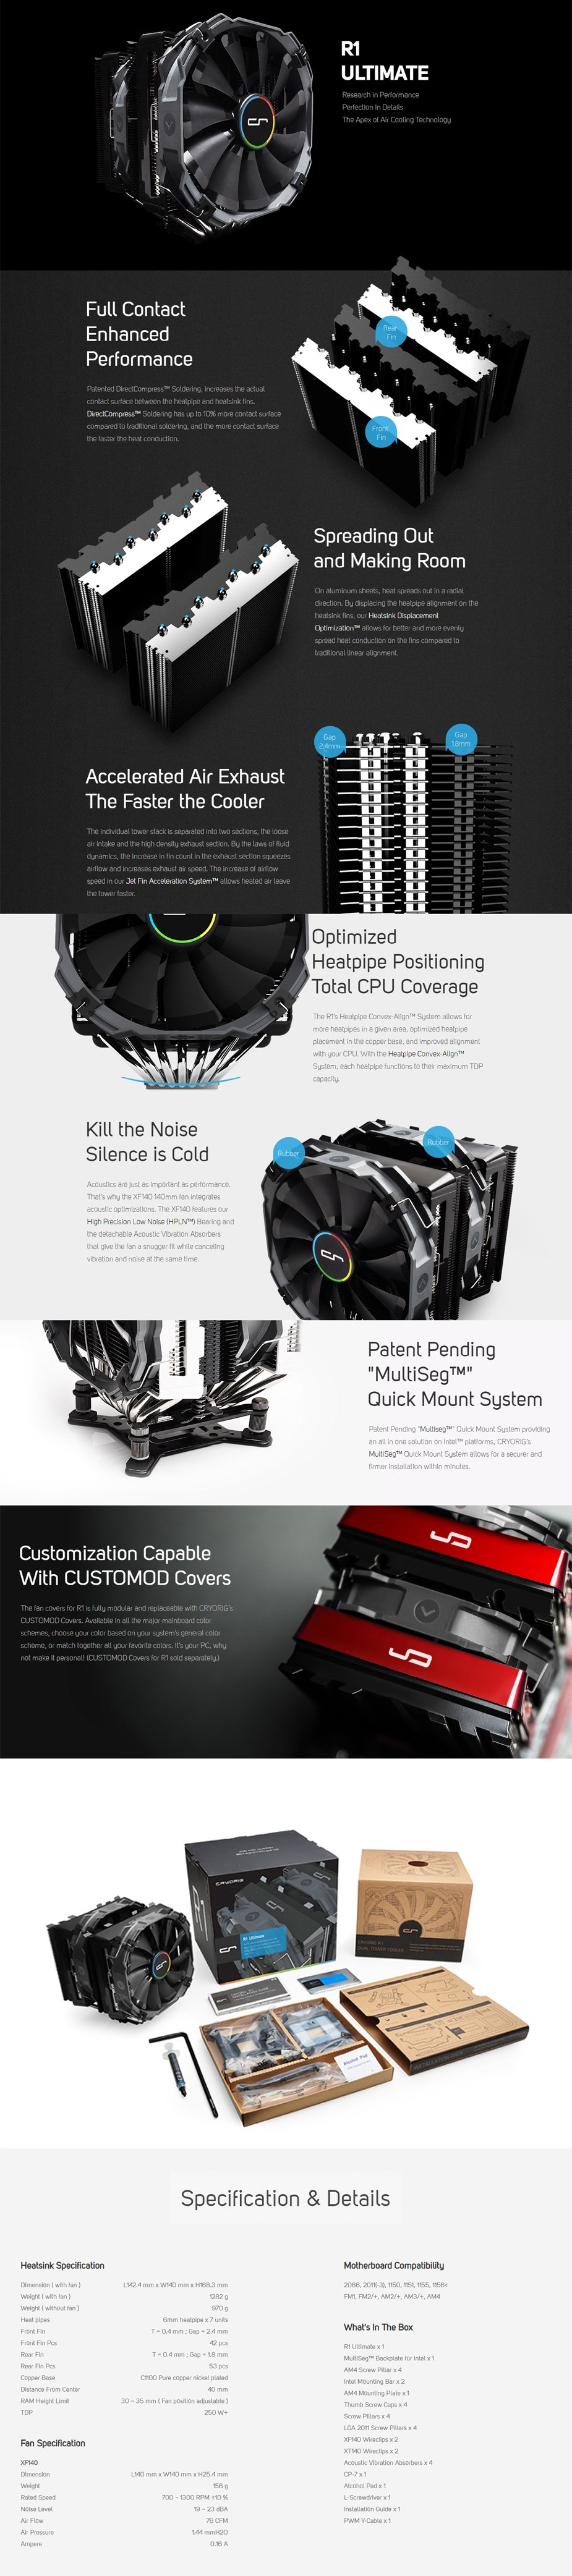 Cryorig R1 Ultimate CPU Cooler - Overview 1